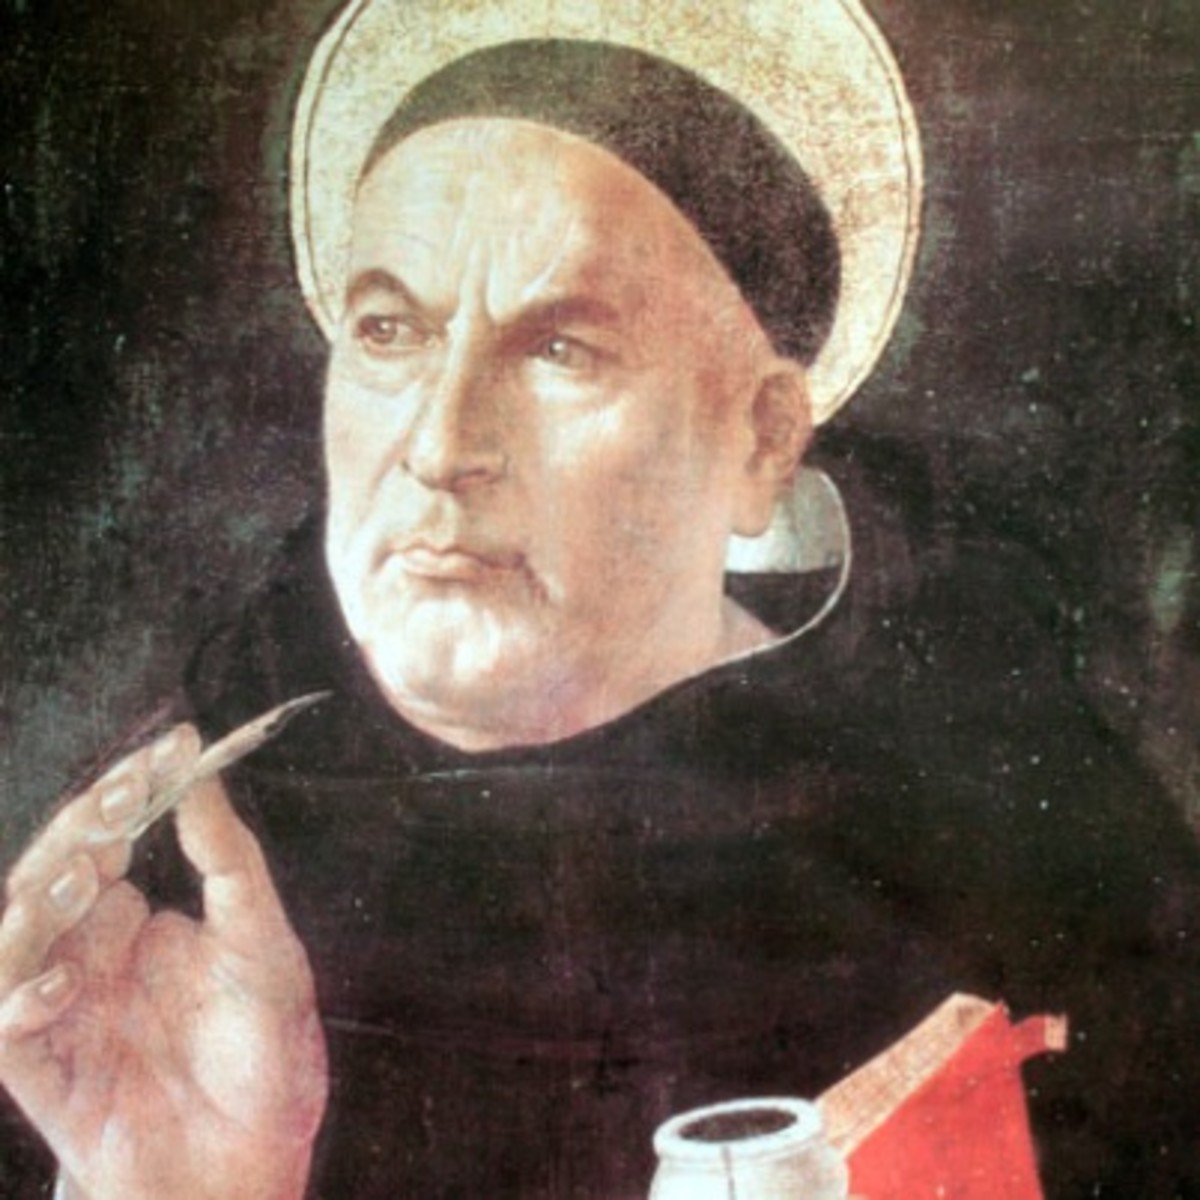 st thomas aquinas theologian philosopher priest saint st thomas aquinas theologian philosopher priest saint com